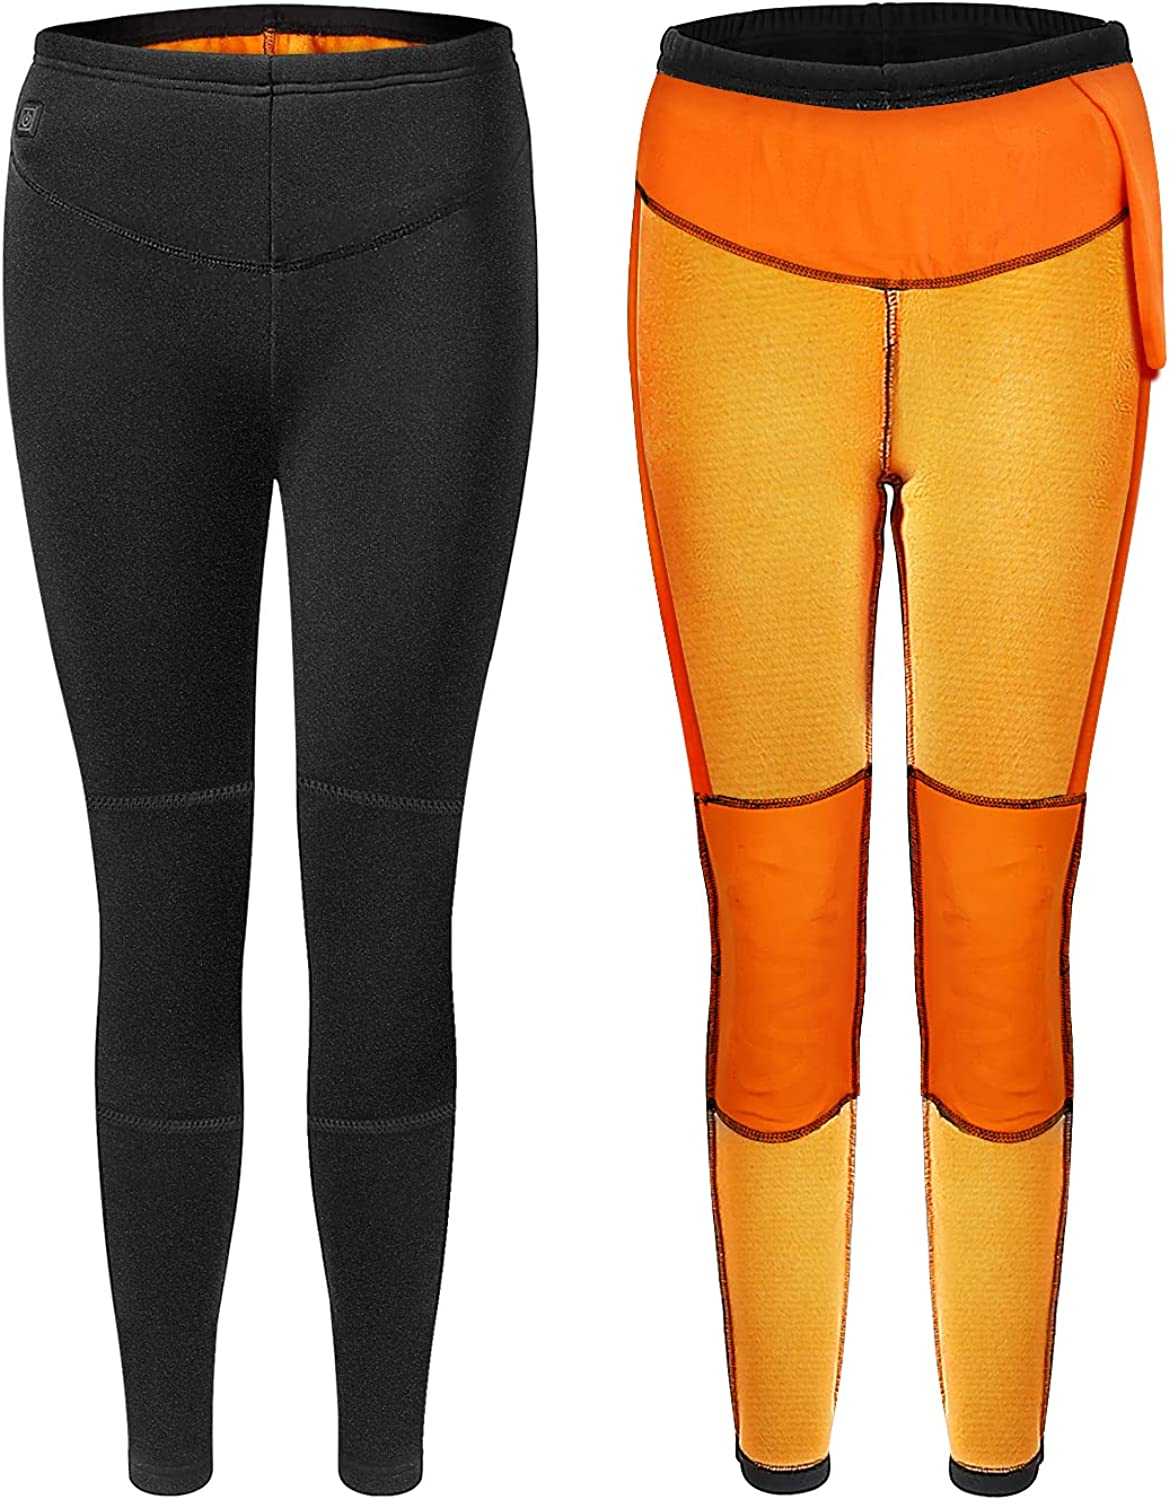 BABUTENLO Thermal Pants for Women, Thermal Underwear Fleece Lined Leggings Base Layer Bottoms for Winer Cold Weather